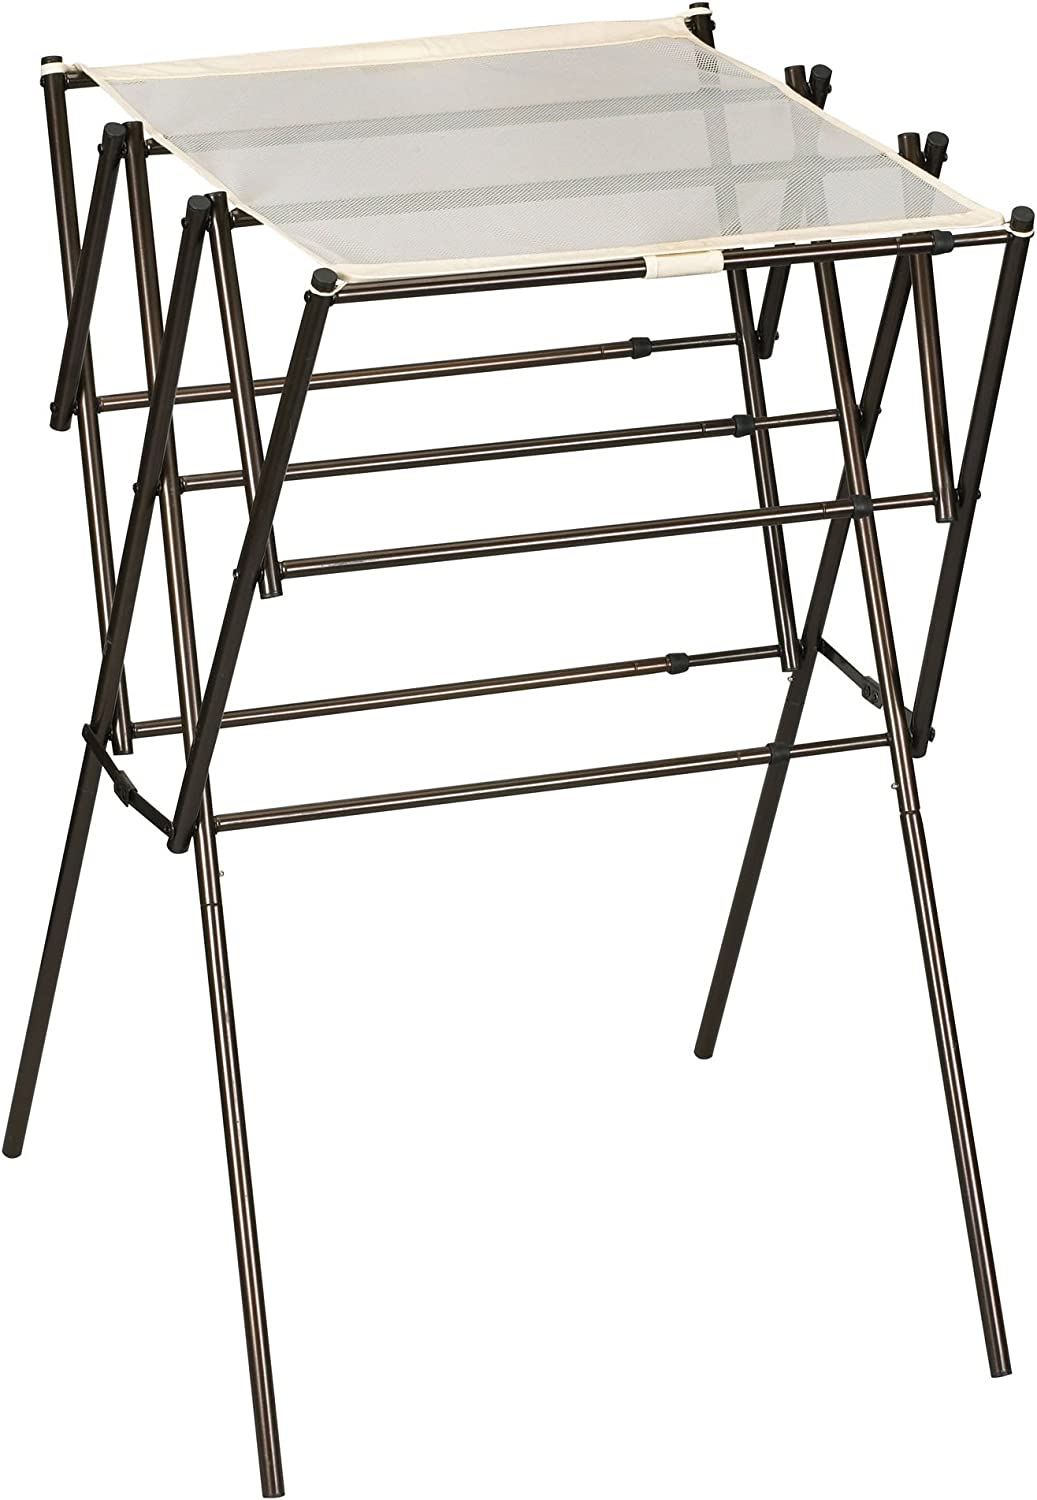 Household Essentials 5175 Collapsible Expandable Metal Clothes Drying Rack, Antique Bronze